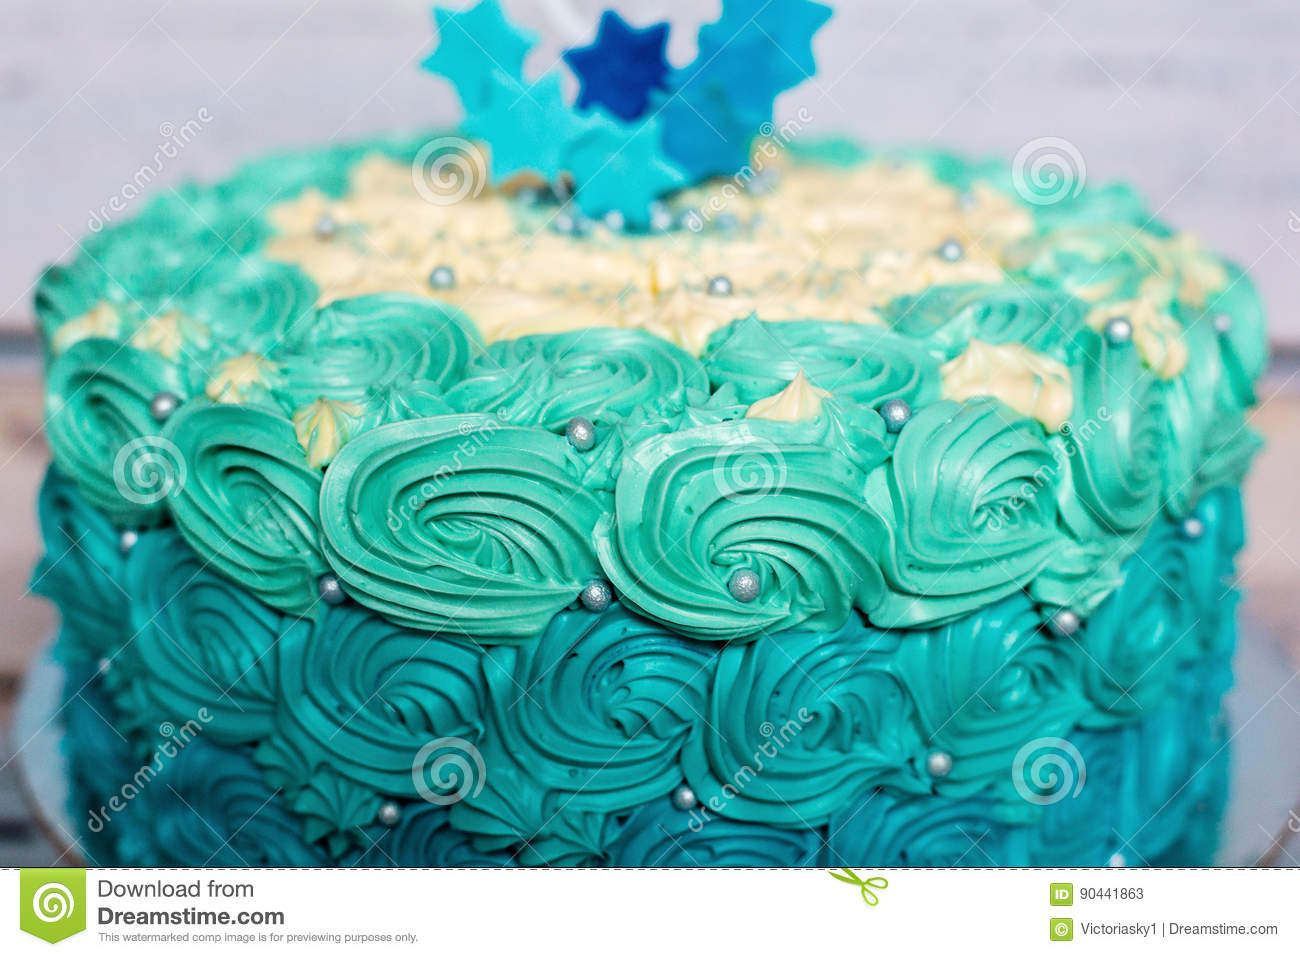 cyan and blue one layer birthday cake detail stock photo - image